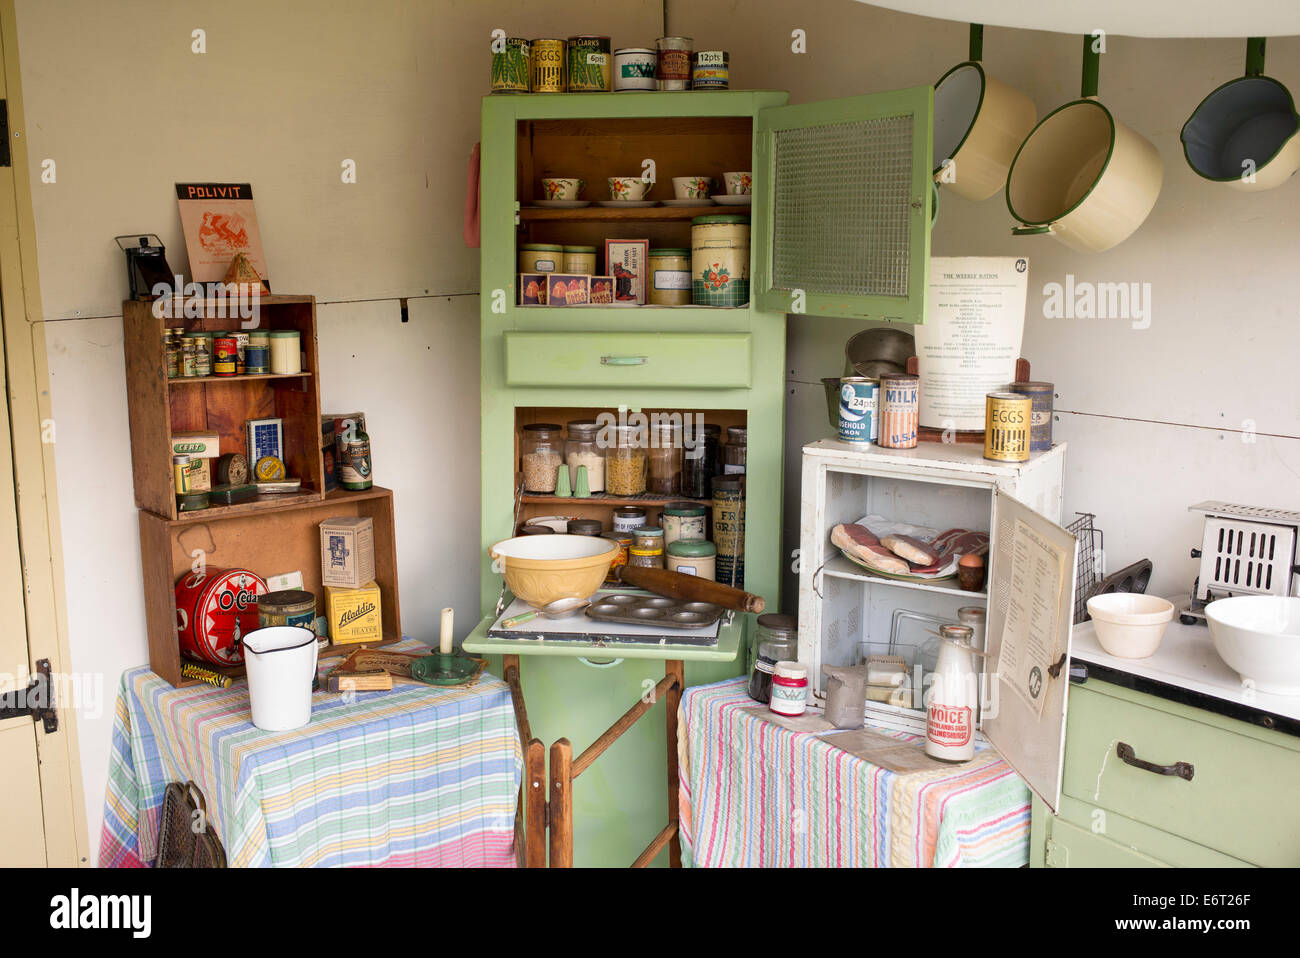 Replica 1940s wartime english kitchen at a historical reenactment. Military Odyessy show at Detling, Kent, UK - Stock Image